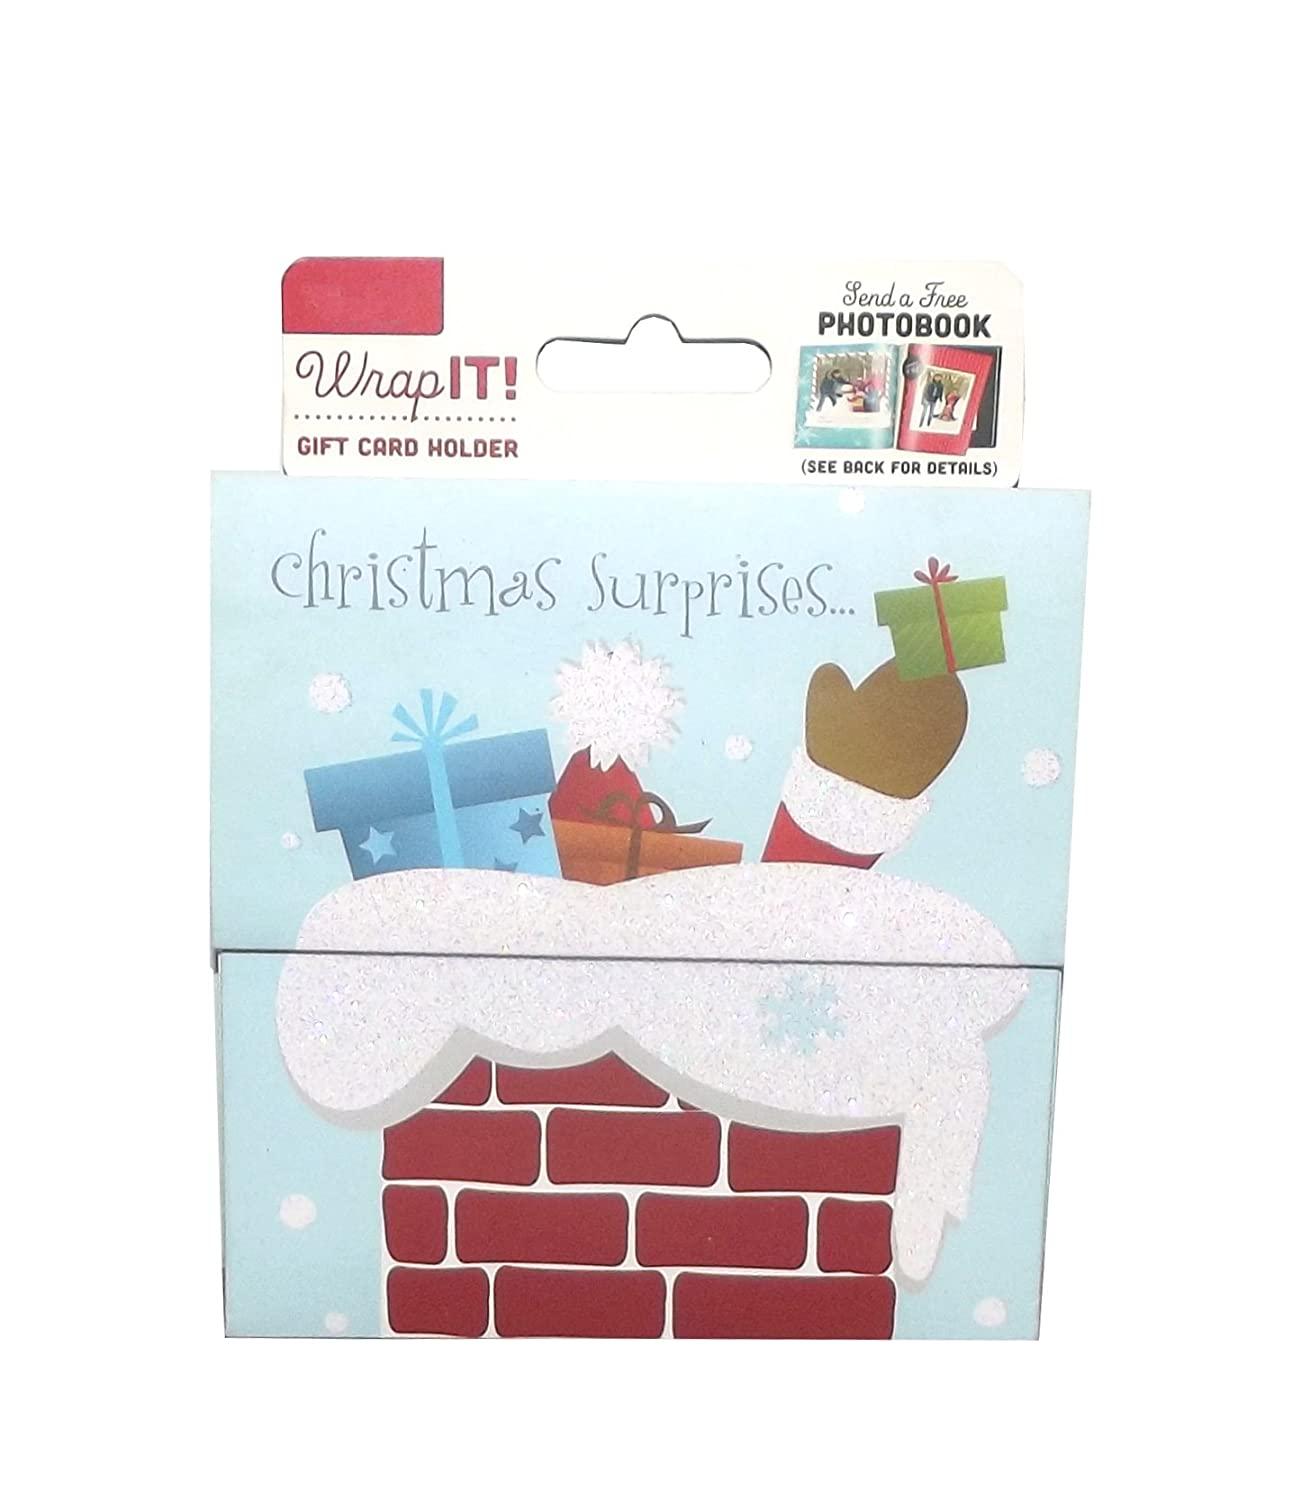 Amazon.com : Wrap It! Holiday Gift Card Holder, 4 X 4 inches ...